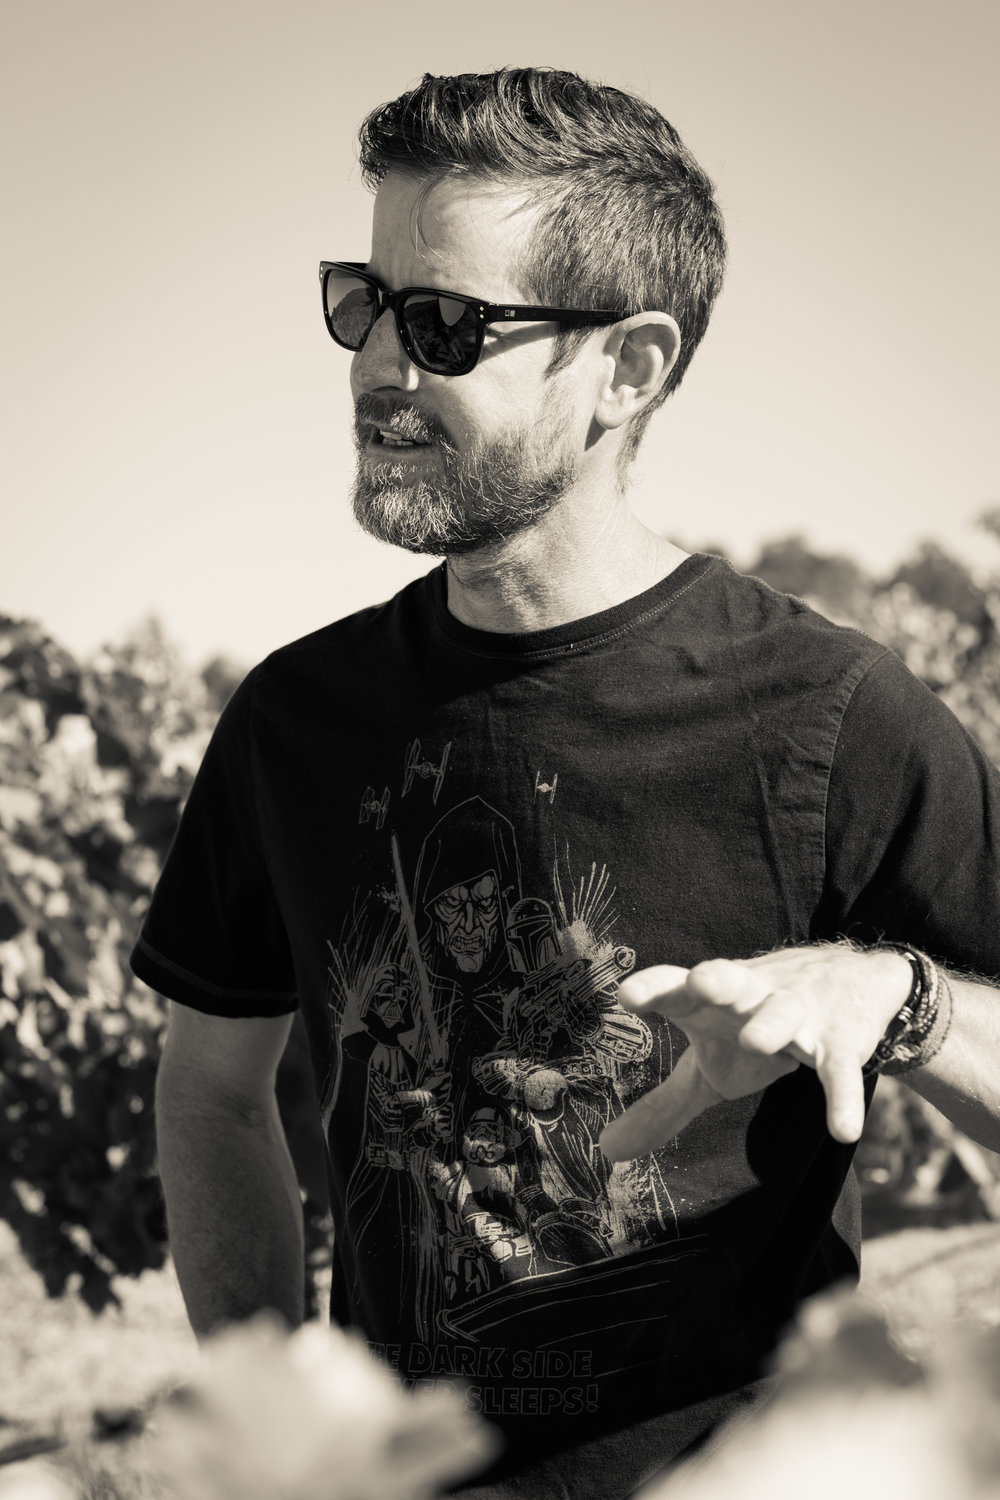 Justin Smith - Winemaker - Saxum Vineyards Justin Smith is the winemaker of Saxum Vineyards which he and his wife, Heather Smith, established in 2002. They are focused on producing Grenache, Syrah, and Mourvèdre based blends using grapes from nearby vineyards located in the Willow Creek District of Paso Robles. The majority of his grapes come from his family's estate vineyard, the James Berry Vineyard, which Justin also owns and manages. It was planted by his parents, James Berry and Terry Smith in the 1980's. He focuses on farming sustainably and organically, keeping yields low, picking fruit at the peak of ripeness, and using a minimalist approach in the cellar. Justin resides with his wife and three children on their vineyard in Paso Robles, Ca.